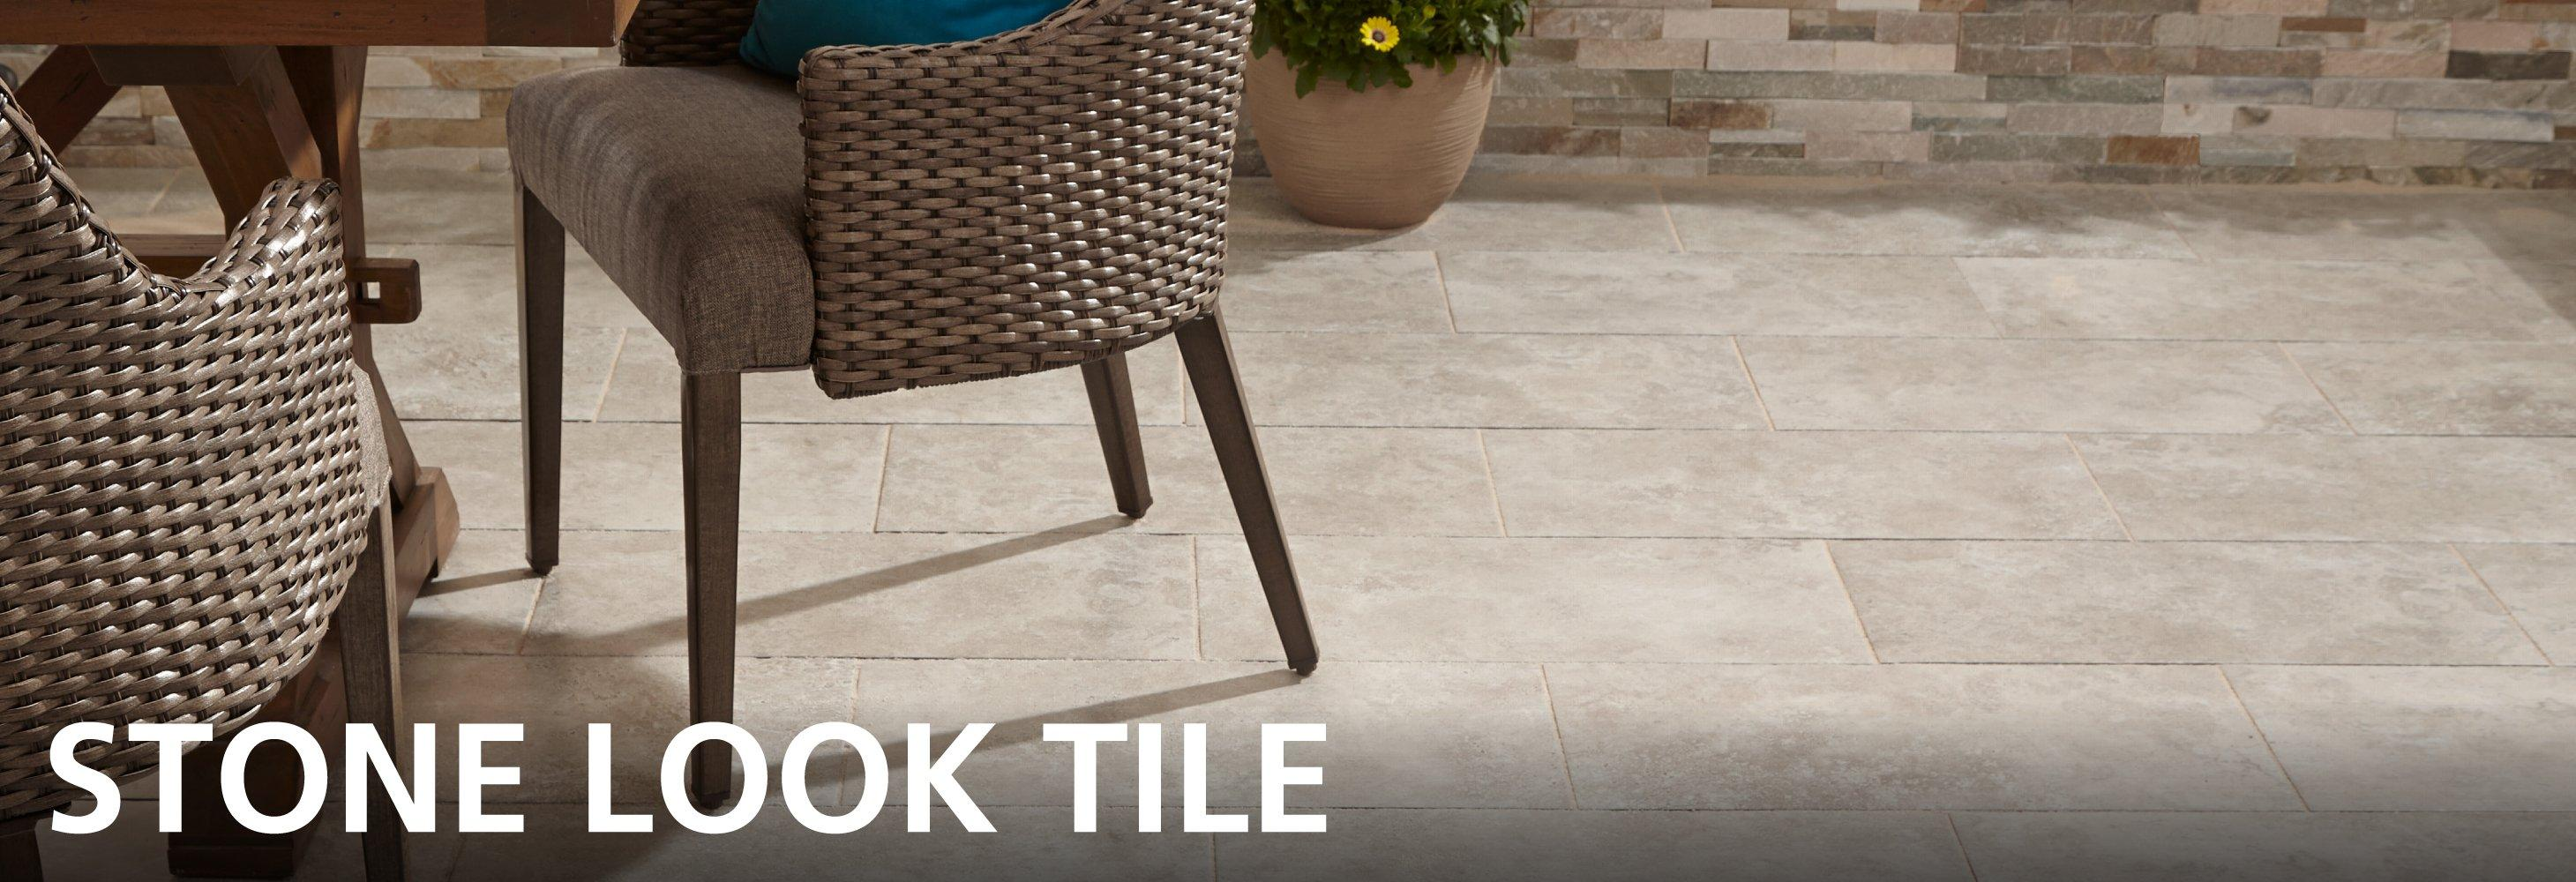 Durable Stone Look Porcelain And Ceramic Flooring Is An Affordable  Alternative To Natural Stone That Looks Great Throughout The House.